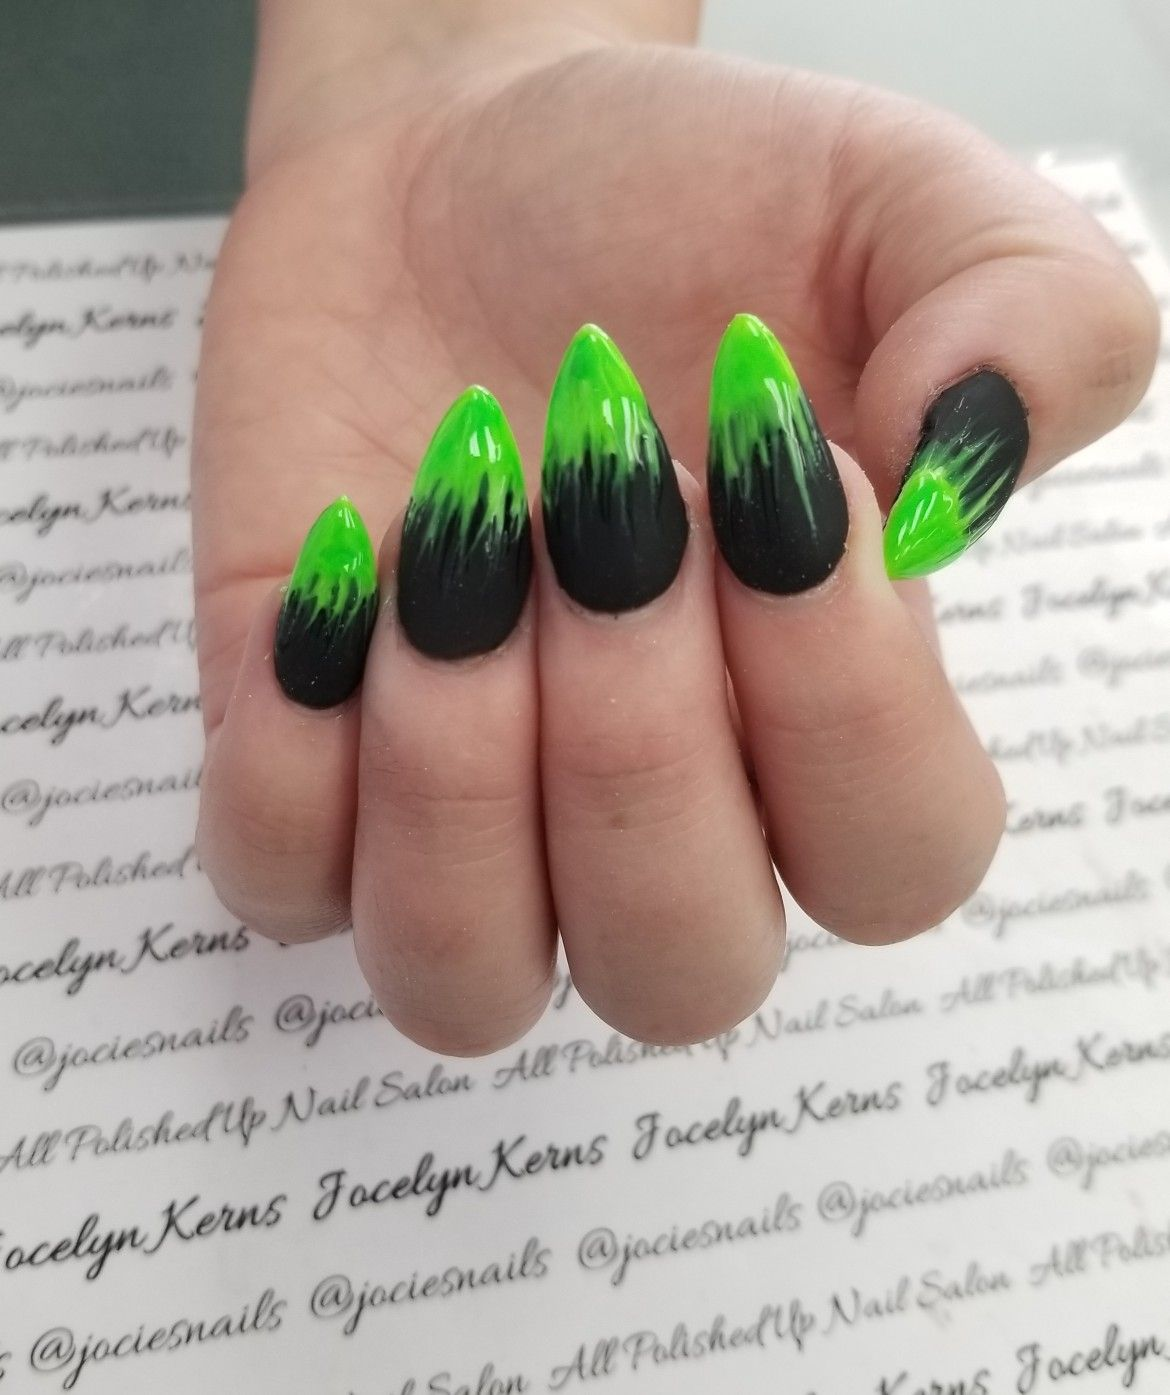 Poison Ivy Nails Poison Dipped Nails Halloween Nails Black And Green Stiletto Nails Halloween Nail Designs Dipped Nails Halloween Nails